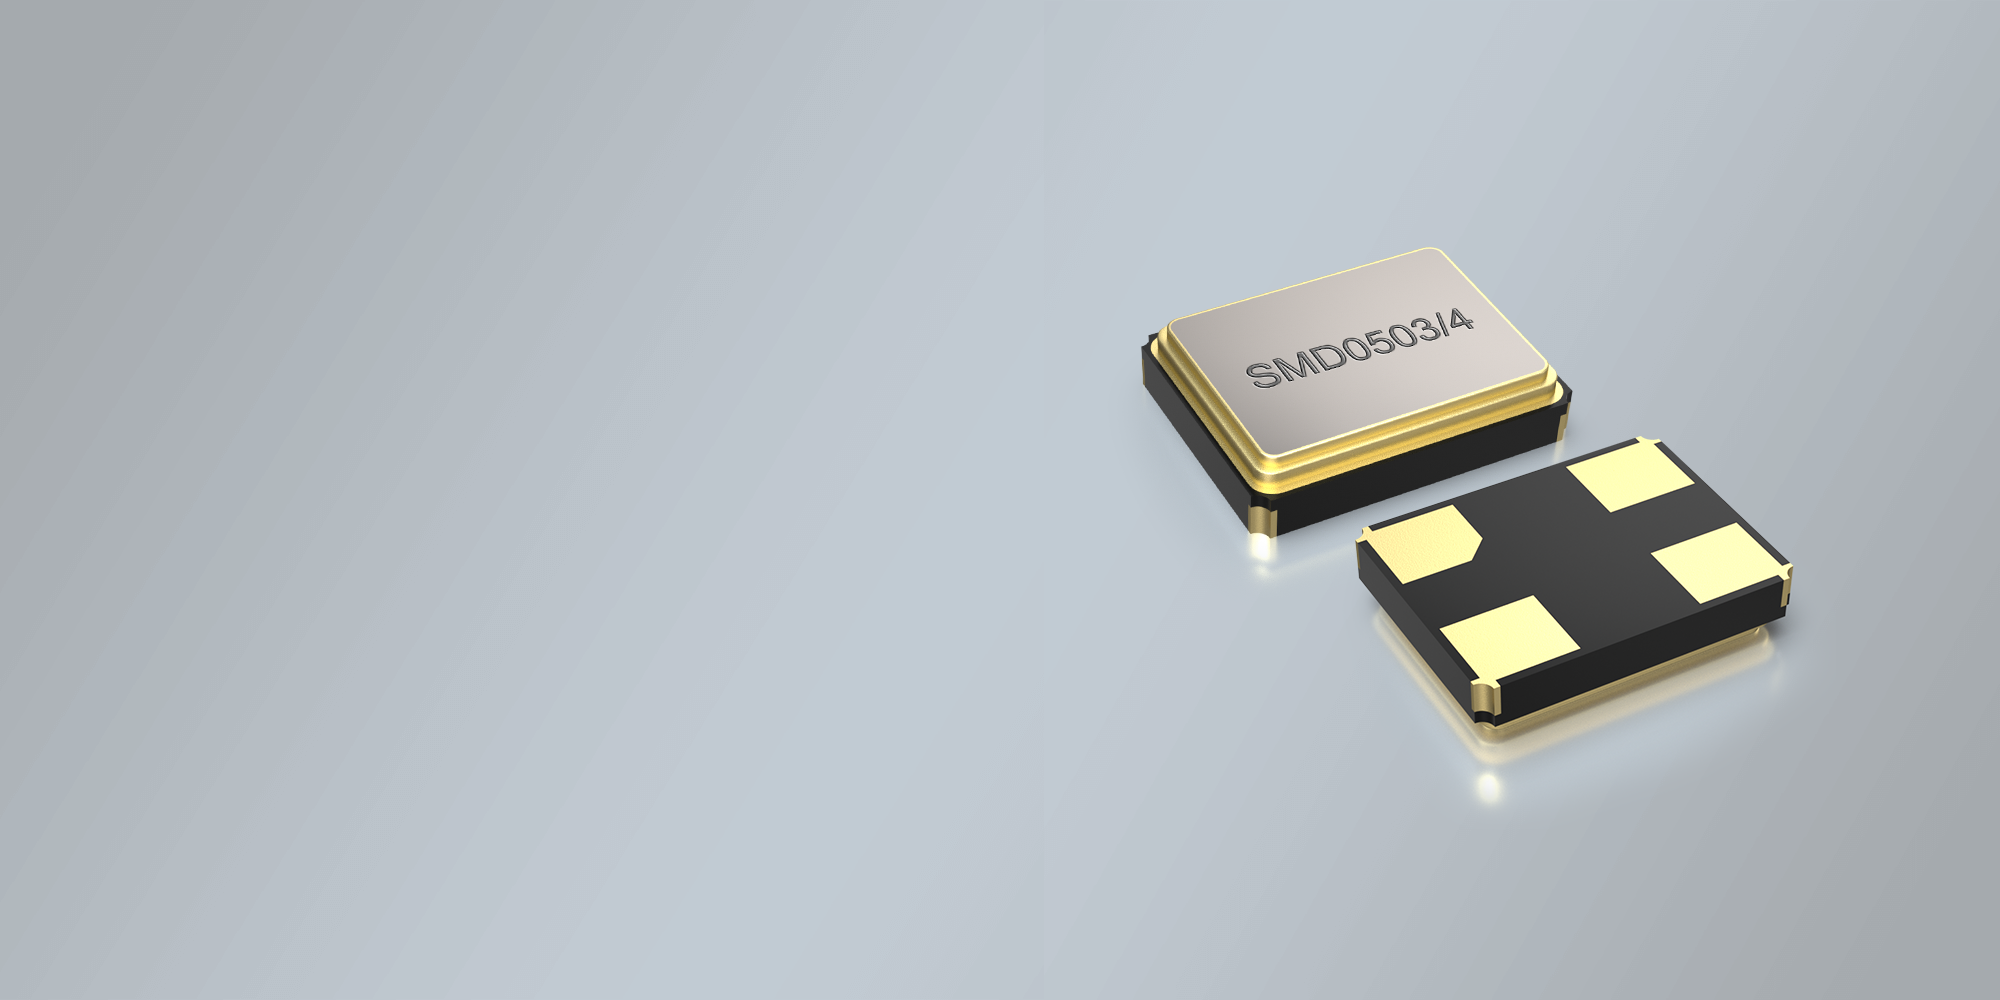 SMD QUARZ 5,0 x 3,2 mm 8.0 - 80.0 MHz